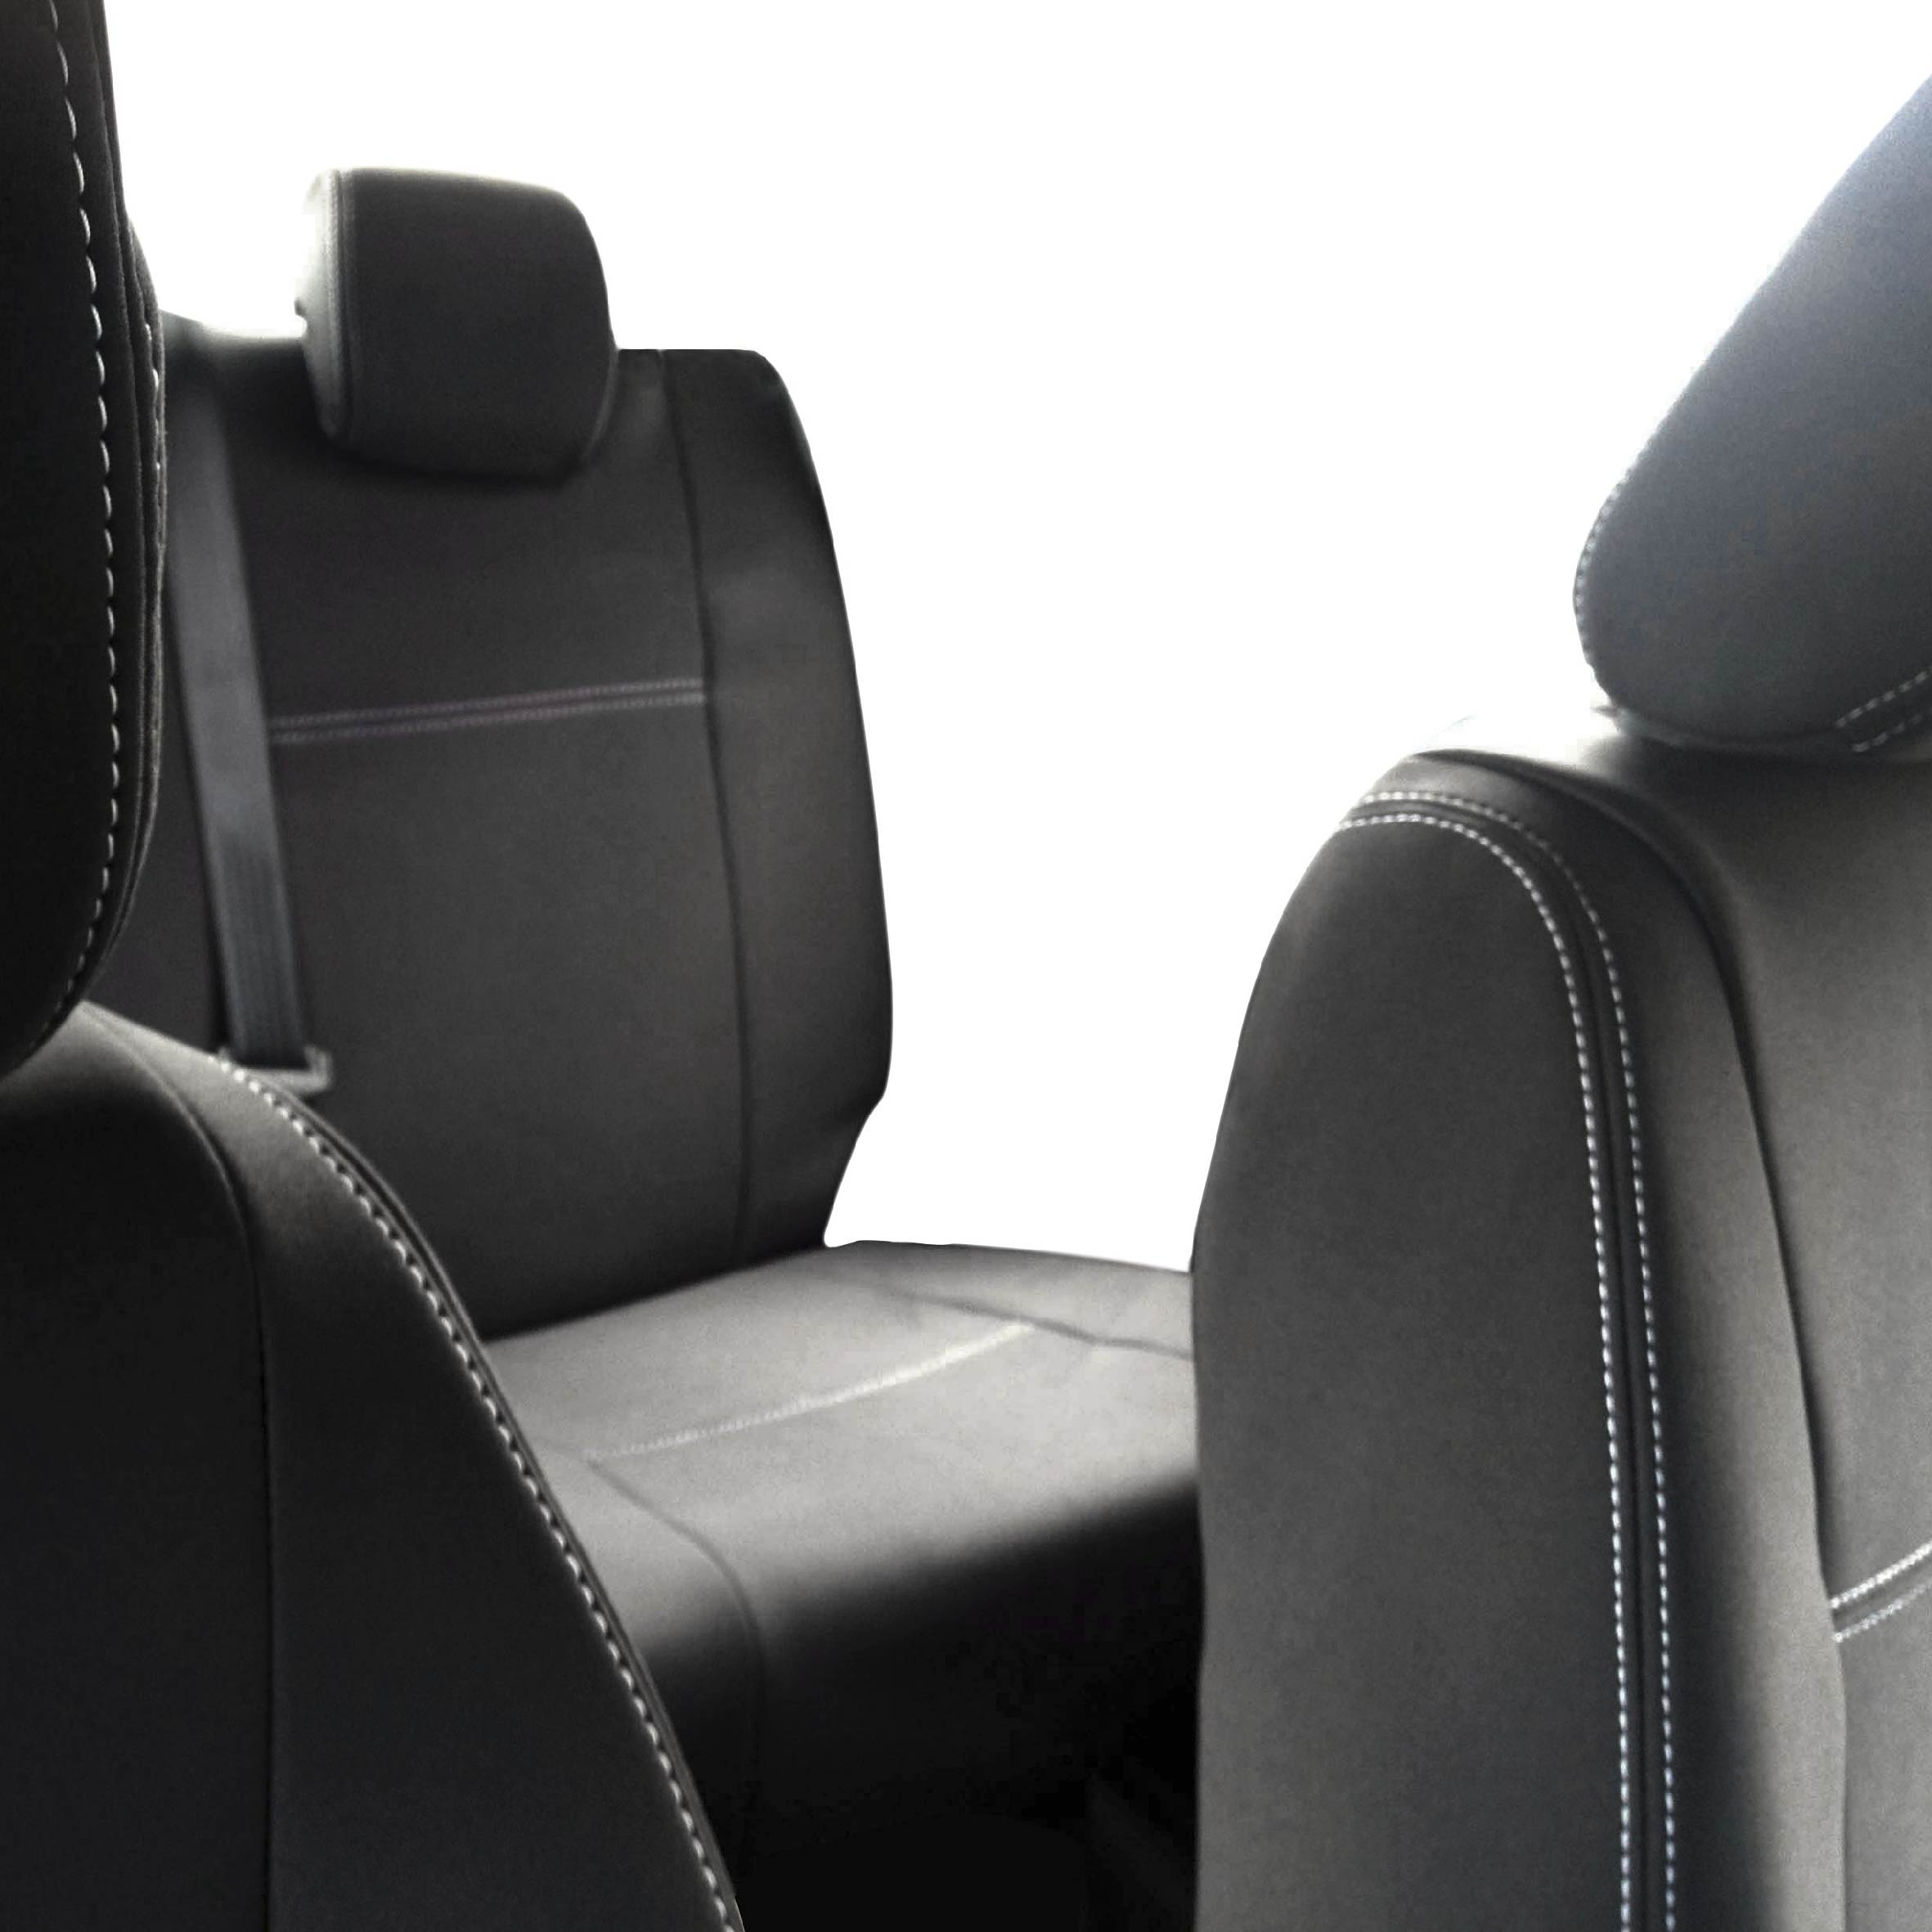 Heavy Duty Black Waterproof Car Seat Covers 2 x Fronts FOR Ford Edge